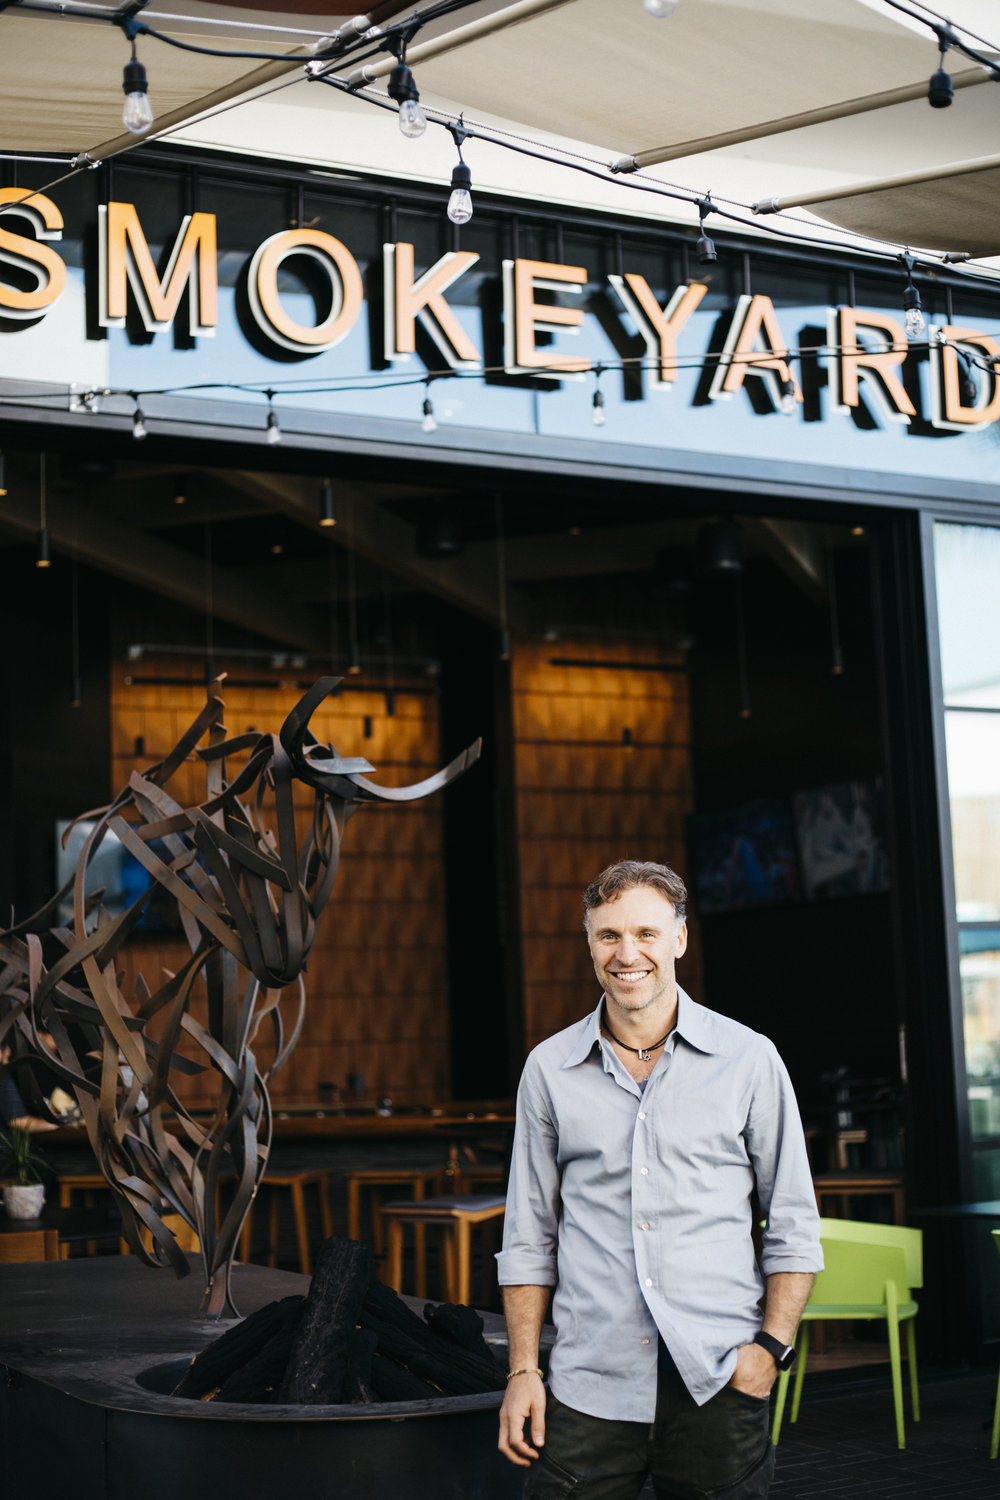 WELCOME TO SMOKEYARD SAN DIEGOat UTC MALL - After a decade of creativity and discovery in the exciting LA restaurant scene, we decided to do what we love, in a town we love, and so Smokeyard Mammoth was born. Ten years later, we've brought Smokeyard to sunny San Diego to begin a new chapter.Our style is modern California BBQ. All our meats are dry-rubbed, then smoked slow and low, till tender and juicy. From our roots in South Africa to our home in California, Smokeyard's menu is fun, familiar, delicious, and crave-worthy. From our kitchen to your table, or catered to your home or office, we hope you enjoy Smokeyard Modern BBQ!